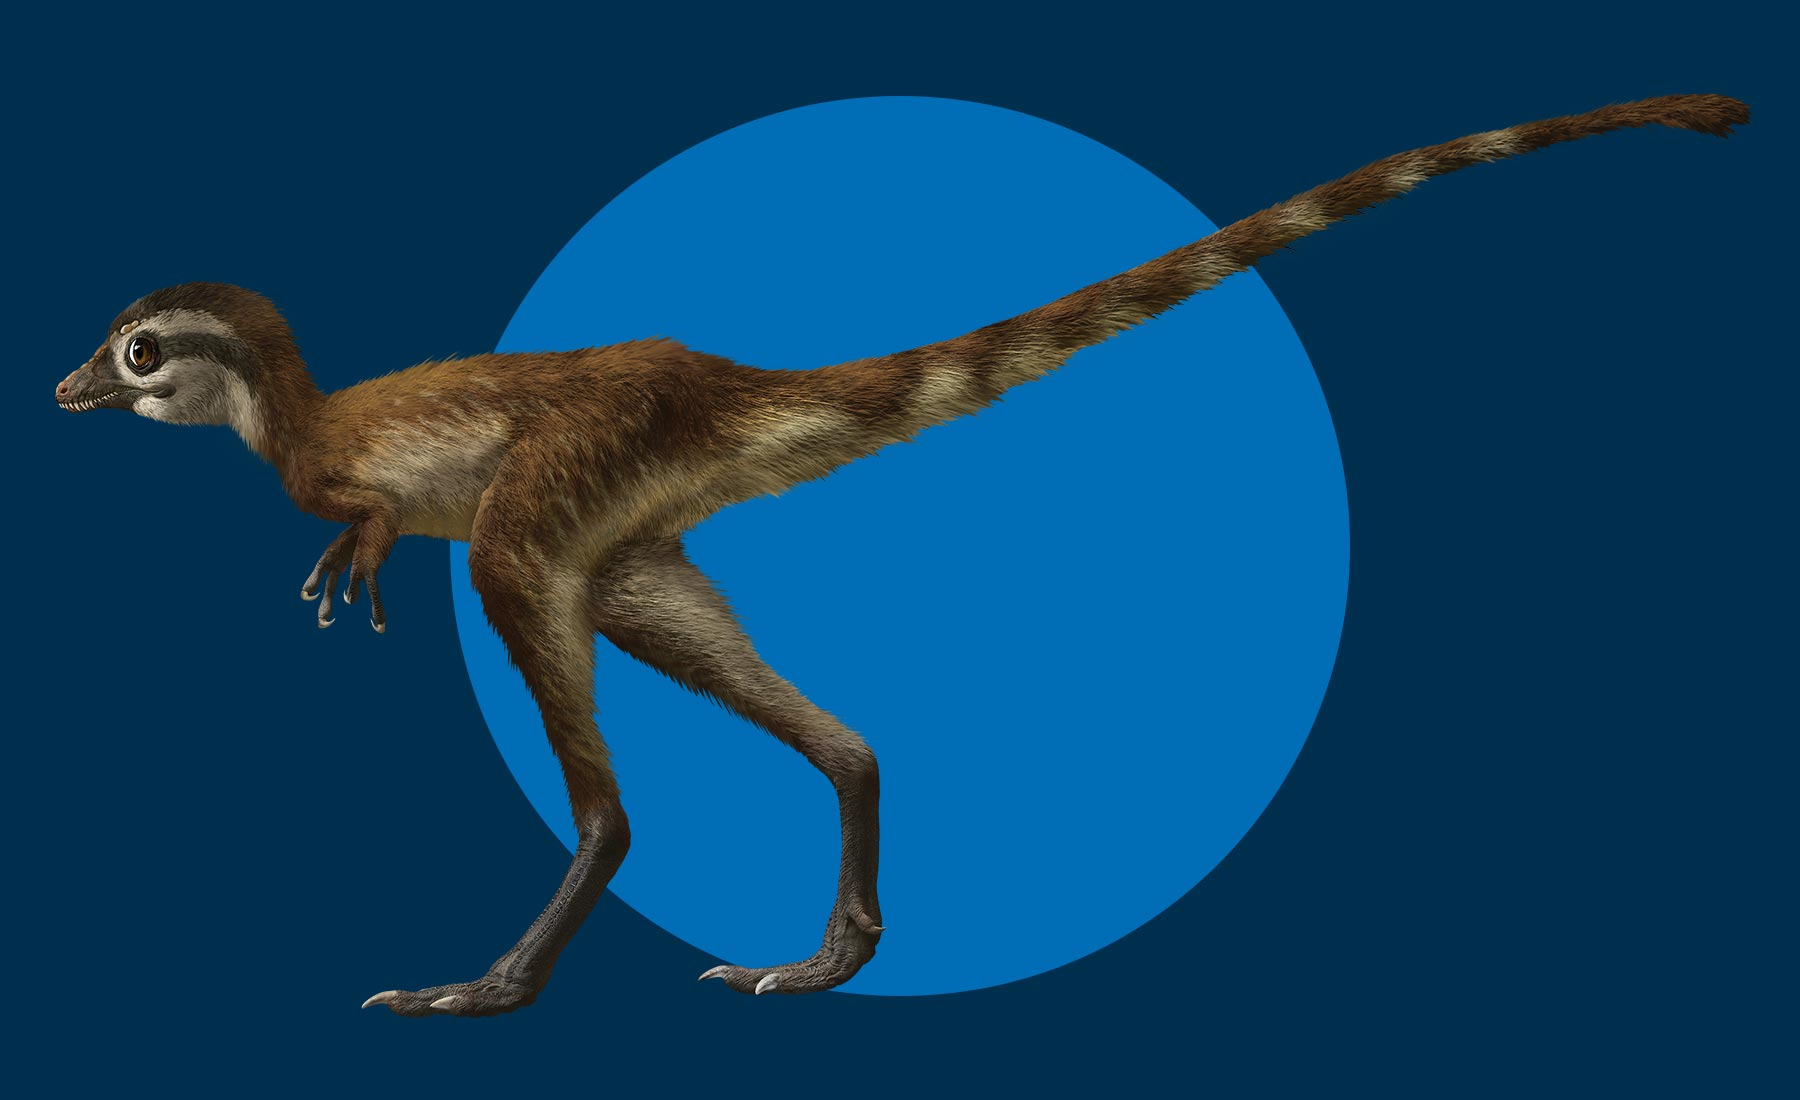 T. rex hatchling with long thin legs and large eyes